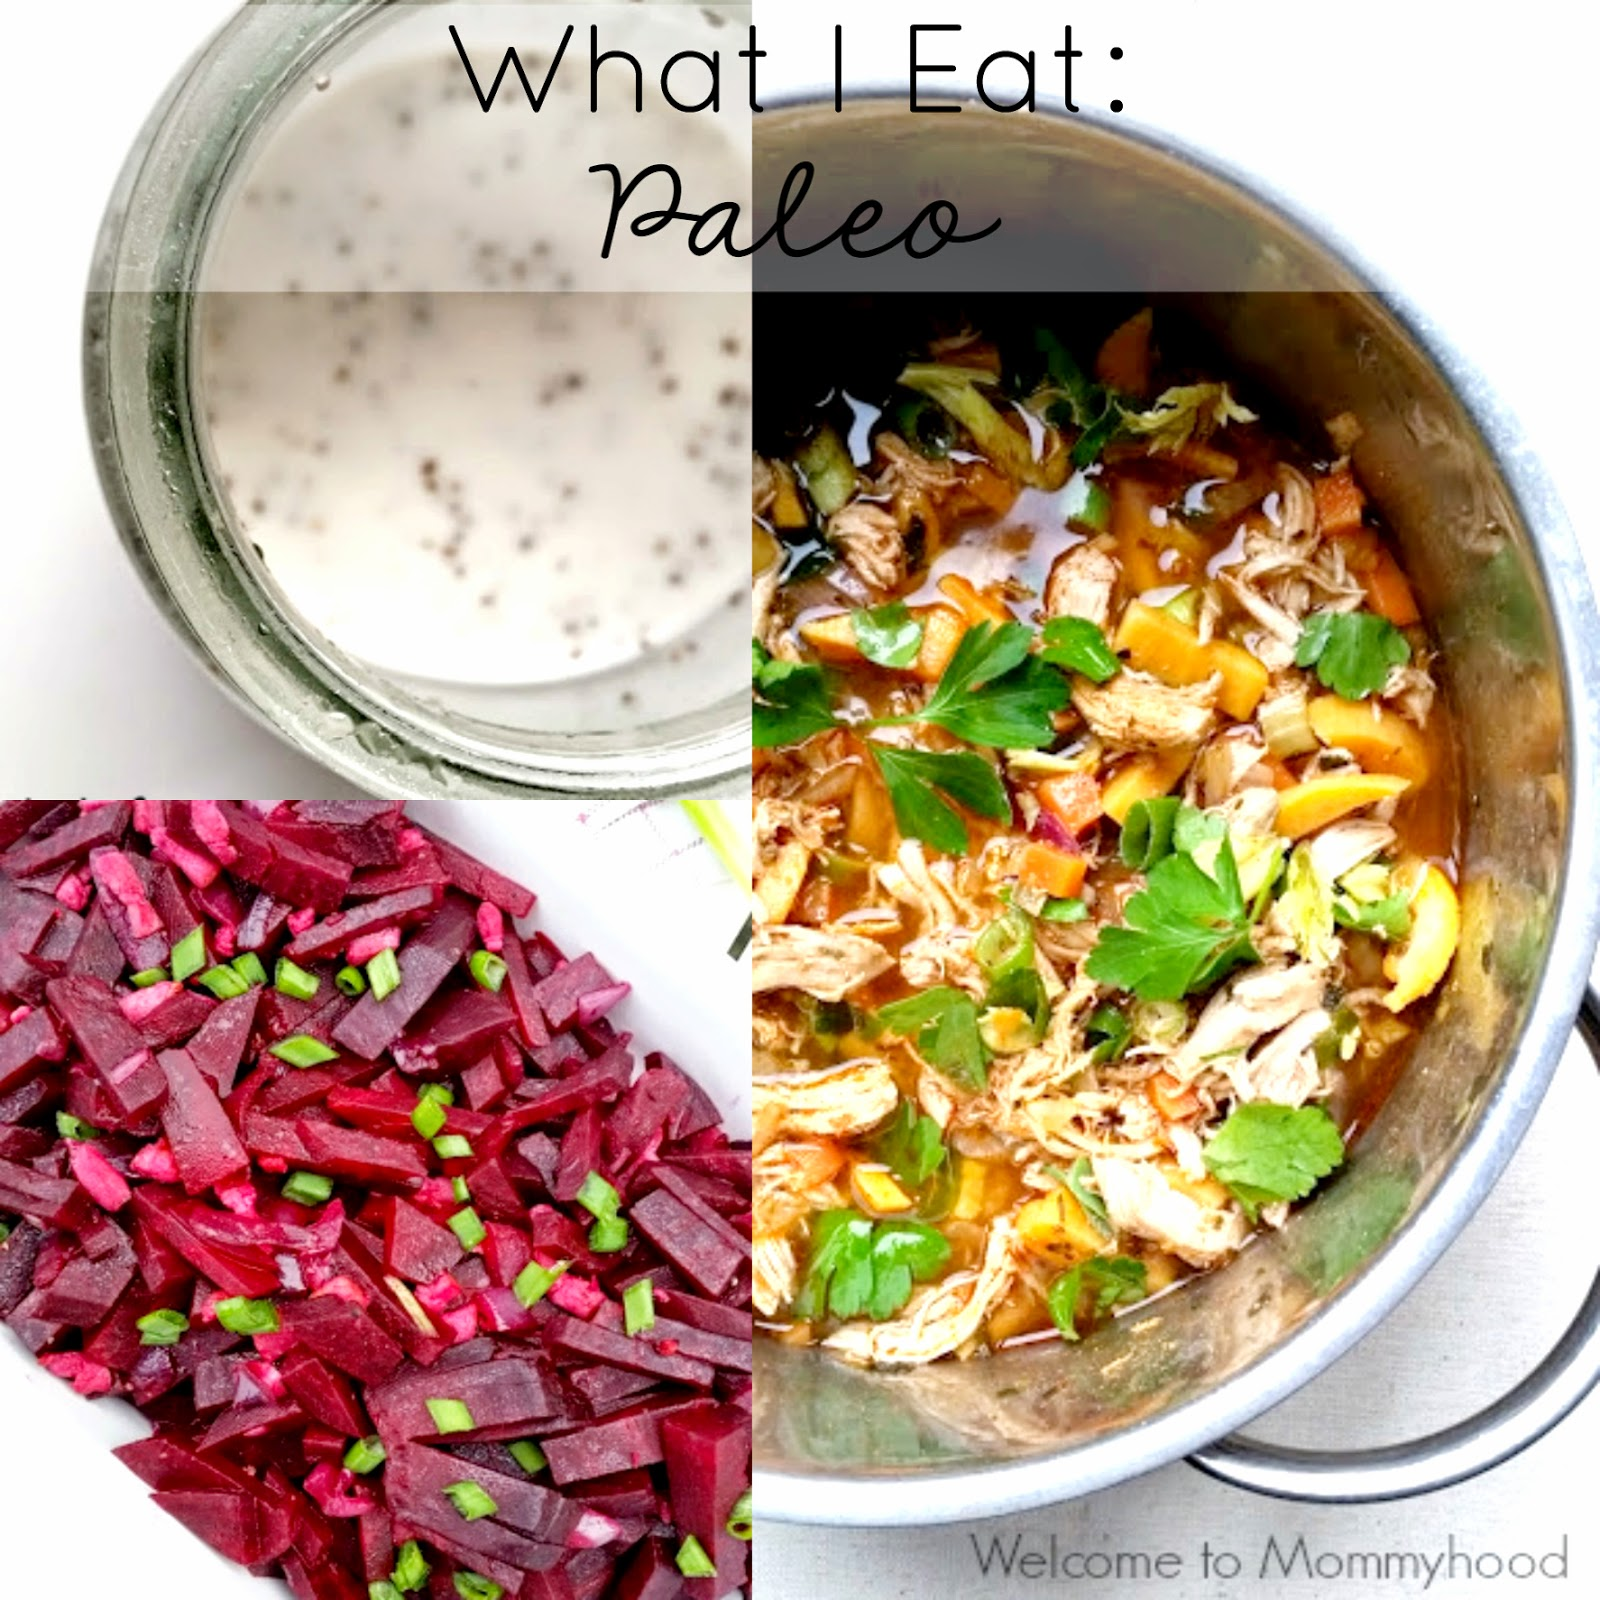 Day of Paleo Meals {Welcome to Mommyhood} #paleo, #WIAW